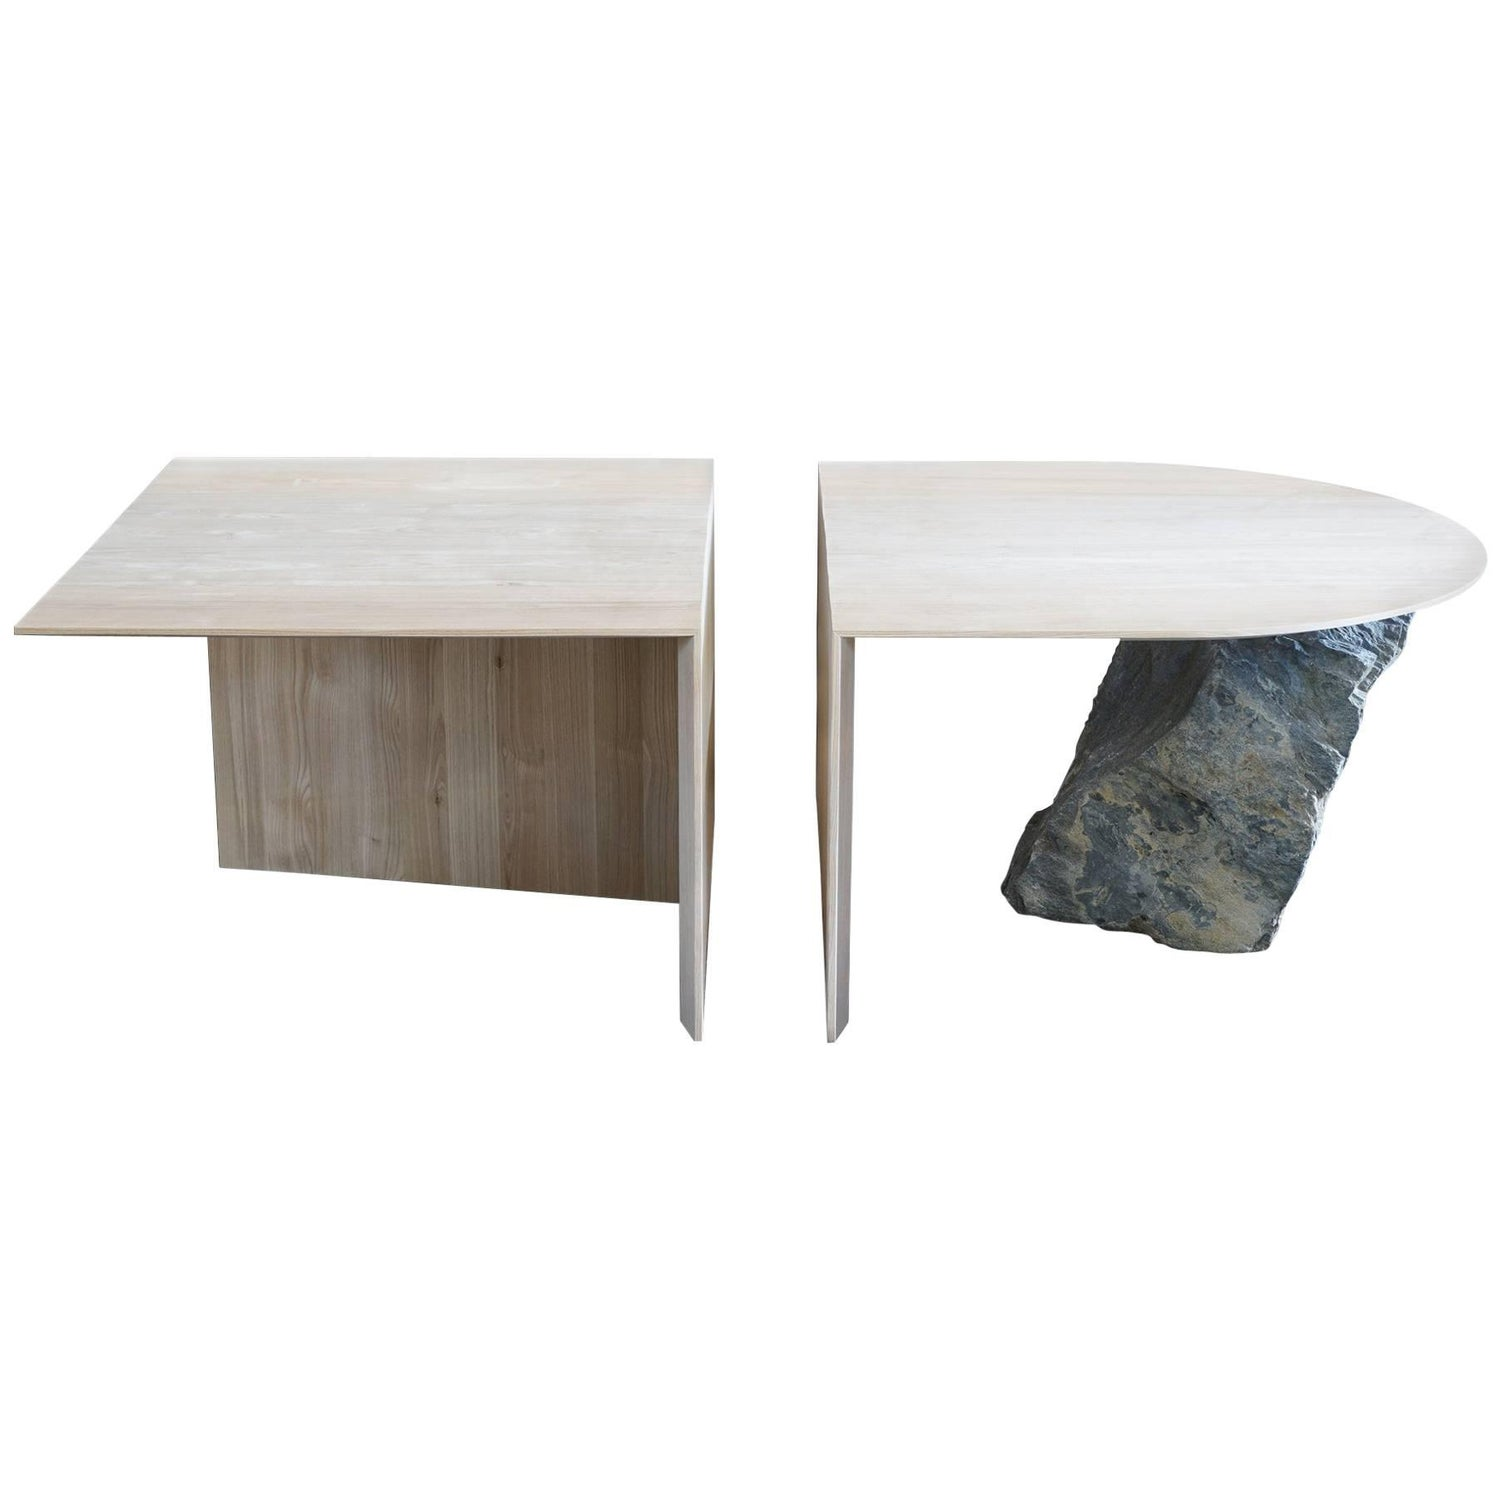 Missisquoi 01 Black Ash and Stone Coffee Table by Simon Johns